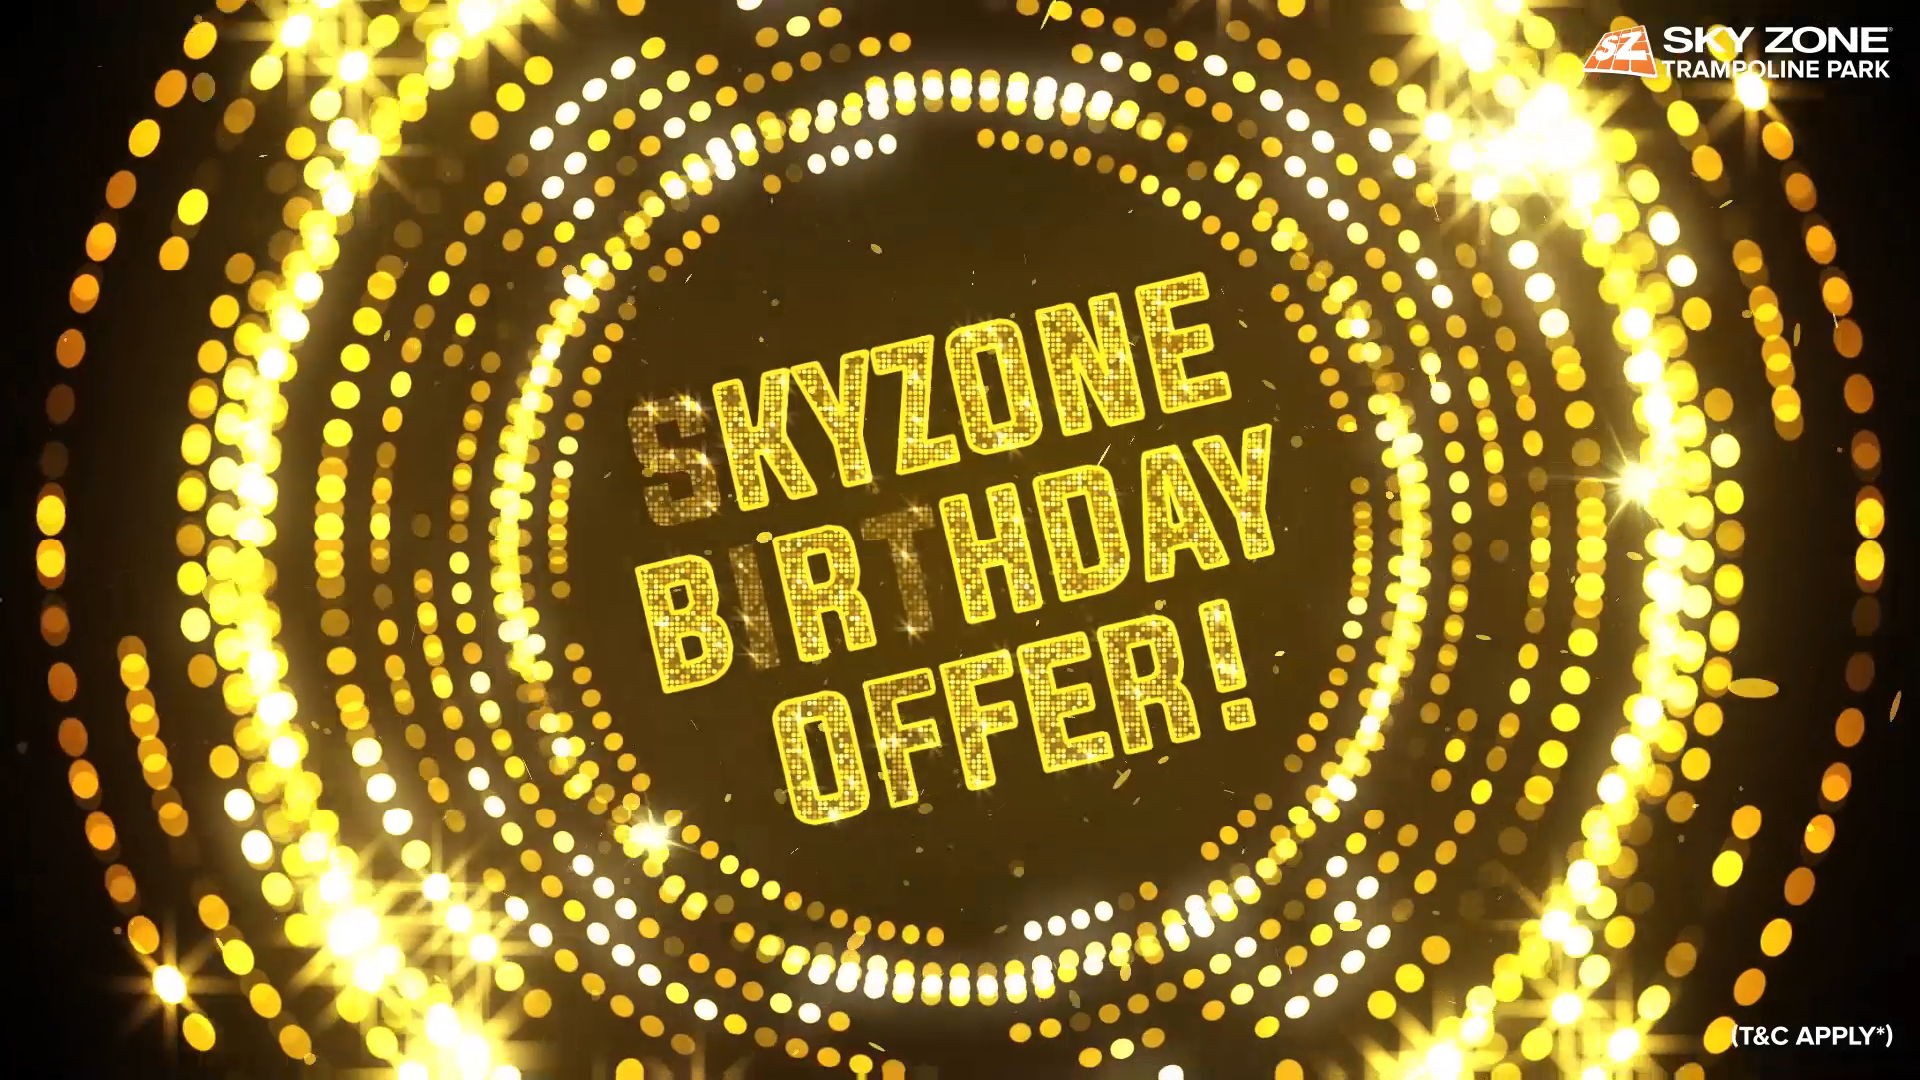 ‼️SKYZONE EPIC #FESTIVE OFFERS:  🔶 Book a #Birthday🎂 & Get Huge 2⃣5⃣% Off *Offer From 25th Dec - 1st Jan! *Booking For @Gandipet Park Only!  🔶Find Joy of Gifting🎁 - Gift Yourself or Your Loved😻 Ones! 2⃣0⃣% Off on #Membership Card Worth 9499 +GST *Offer From 25th Dec to 1st Jan. (T&C Apply.)‼️ 😍🥳🎄🎅 #HolidaySeason #SkyzoneOffers #ChristmasDeals #NewYearOffers  Call: 9357112233. www.skyzonesouthindia.com